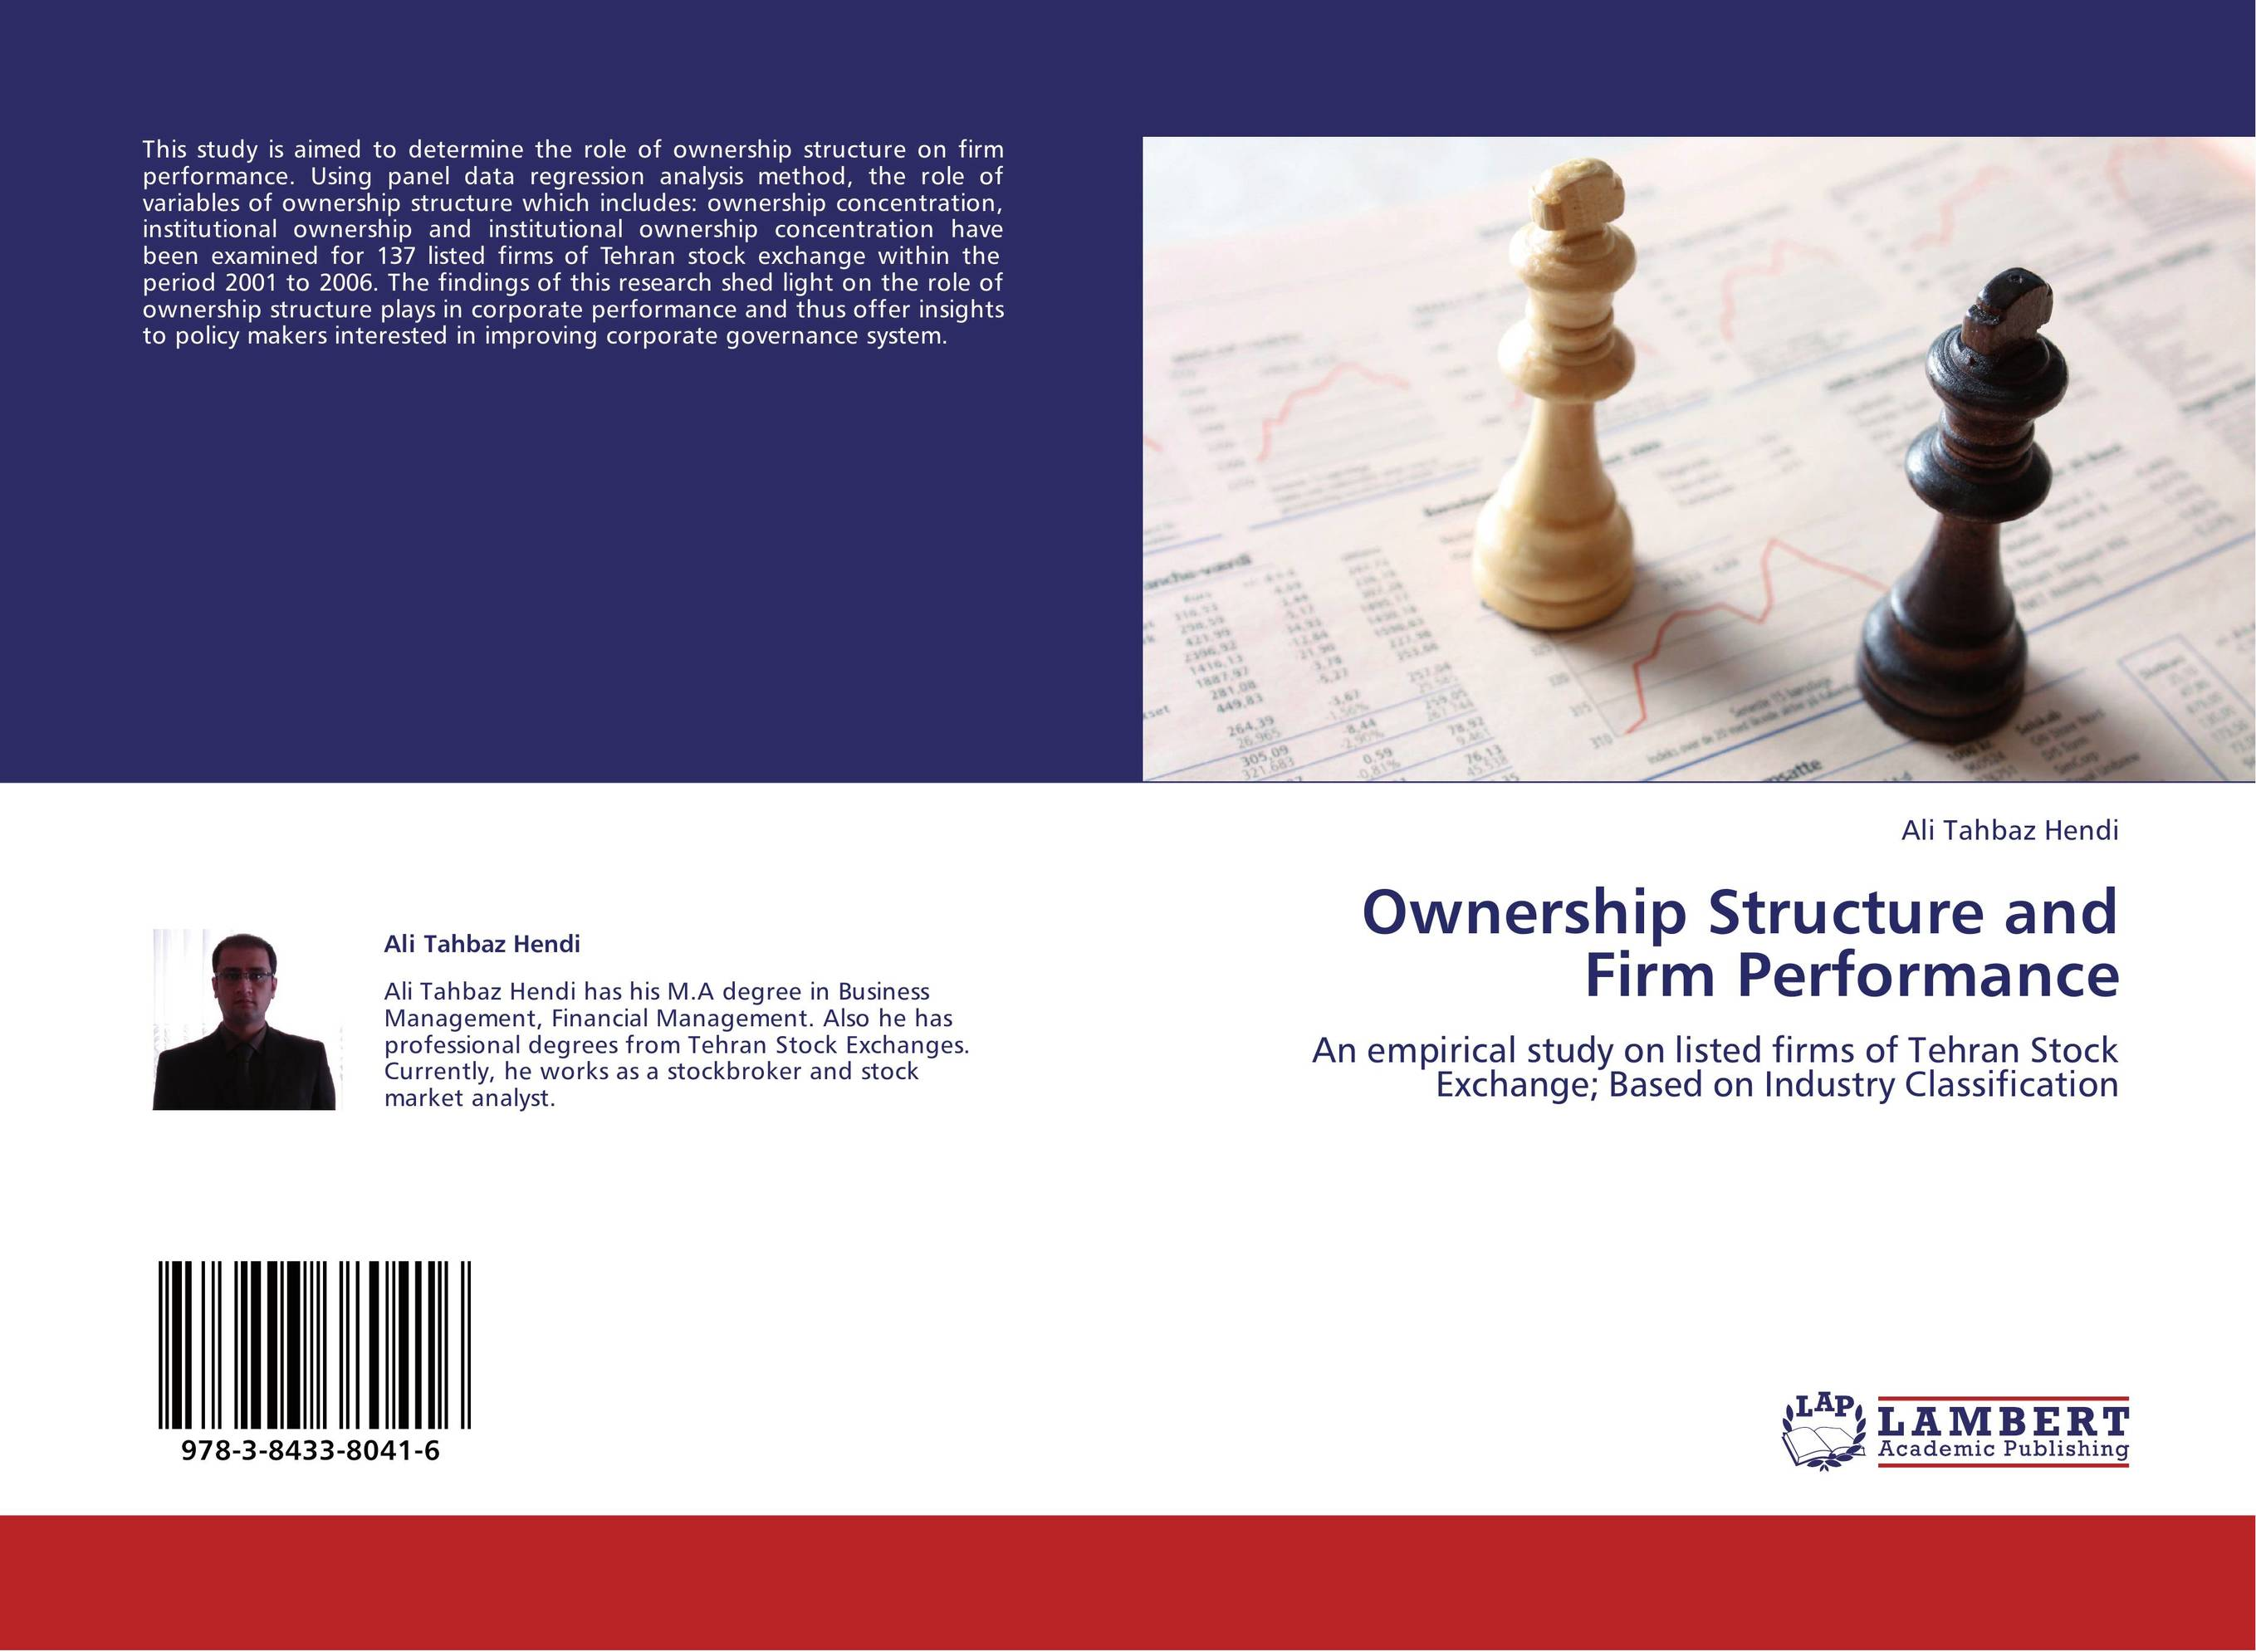 corporate ownership structure and corporate performance essay Below is an essay on corporate governance, dividends and ownership structure in valuing indian firms from anti essays, your source for research abstract: this research aims to show the empirical evidence of the role of corporate governance, ownership structure and dividends while valuing a.